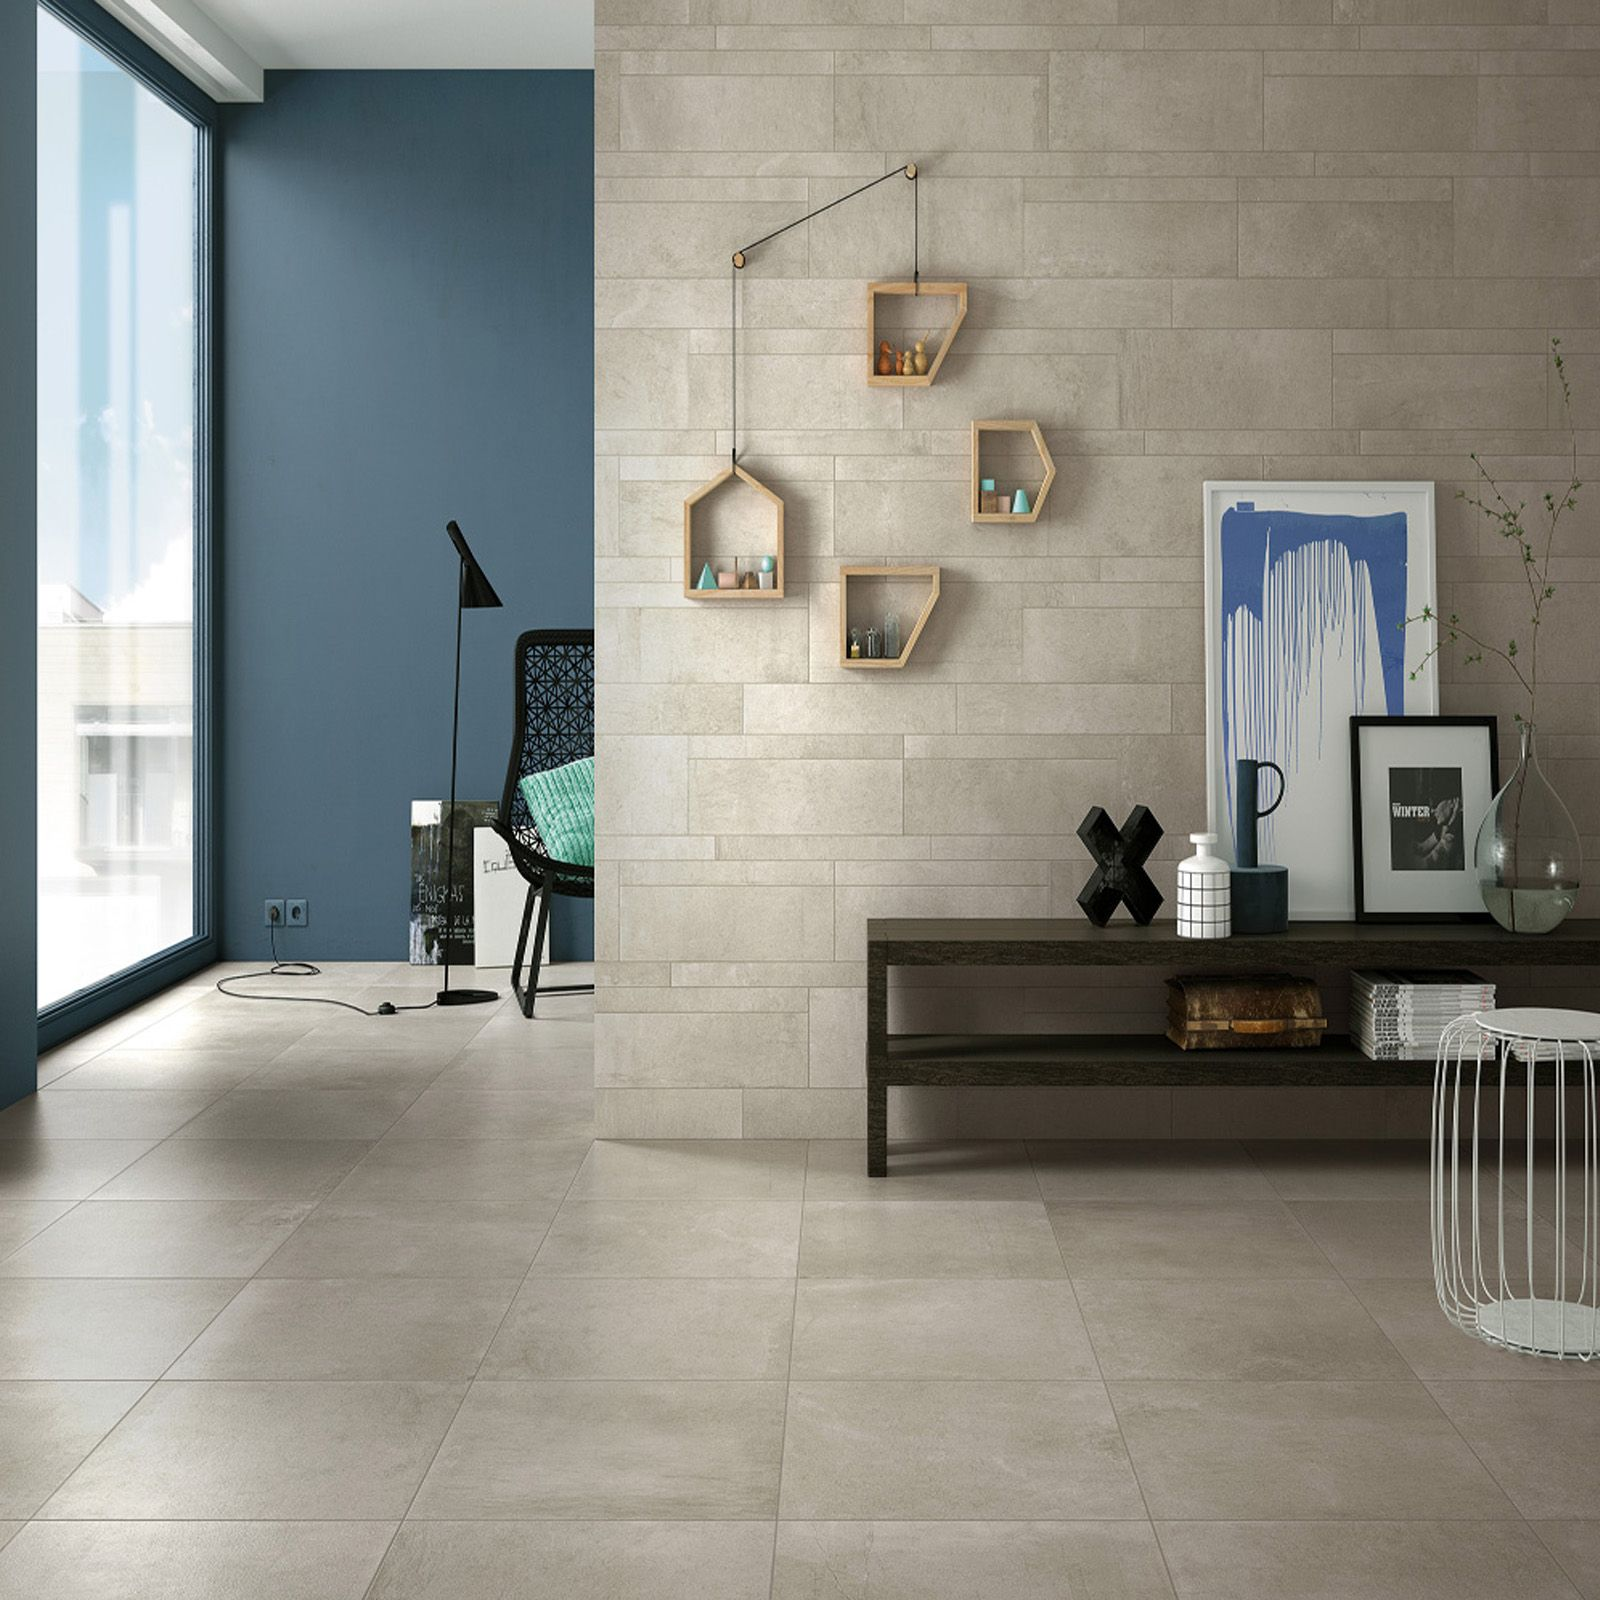 Stylish Living Room Decor Idea Featuring Novemb3r Tiles From Mirage